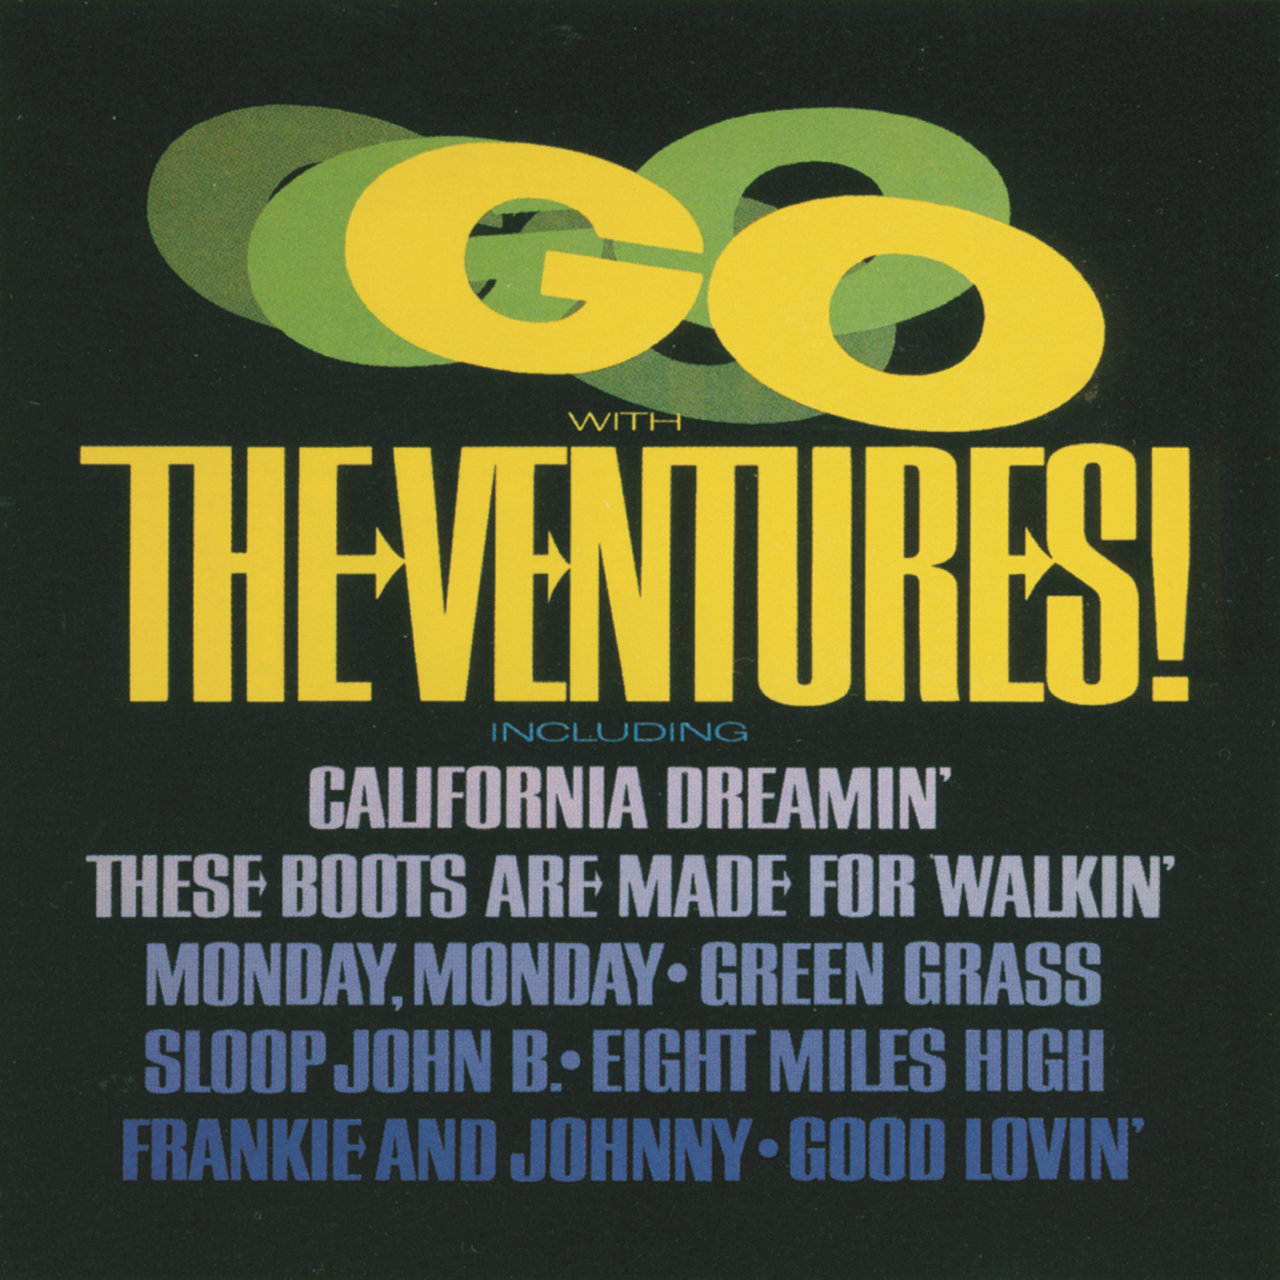 Go With The Ventures!